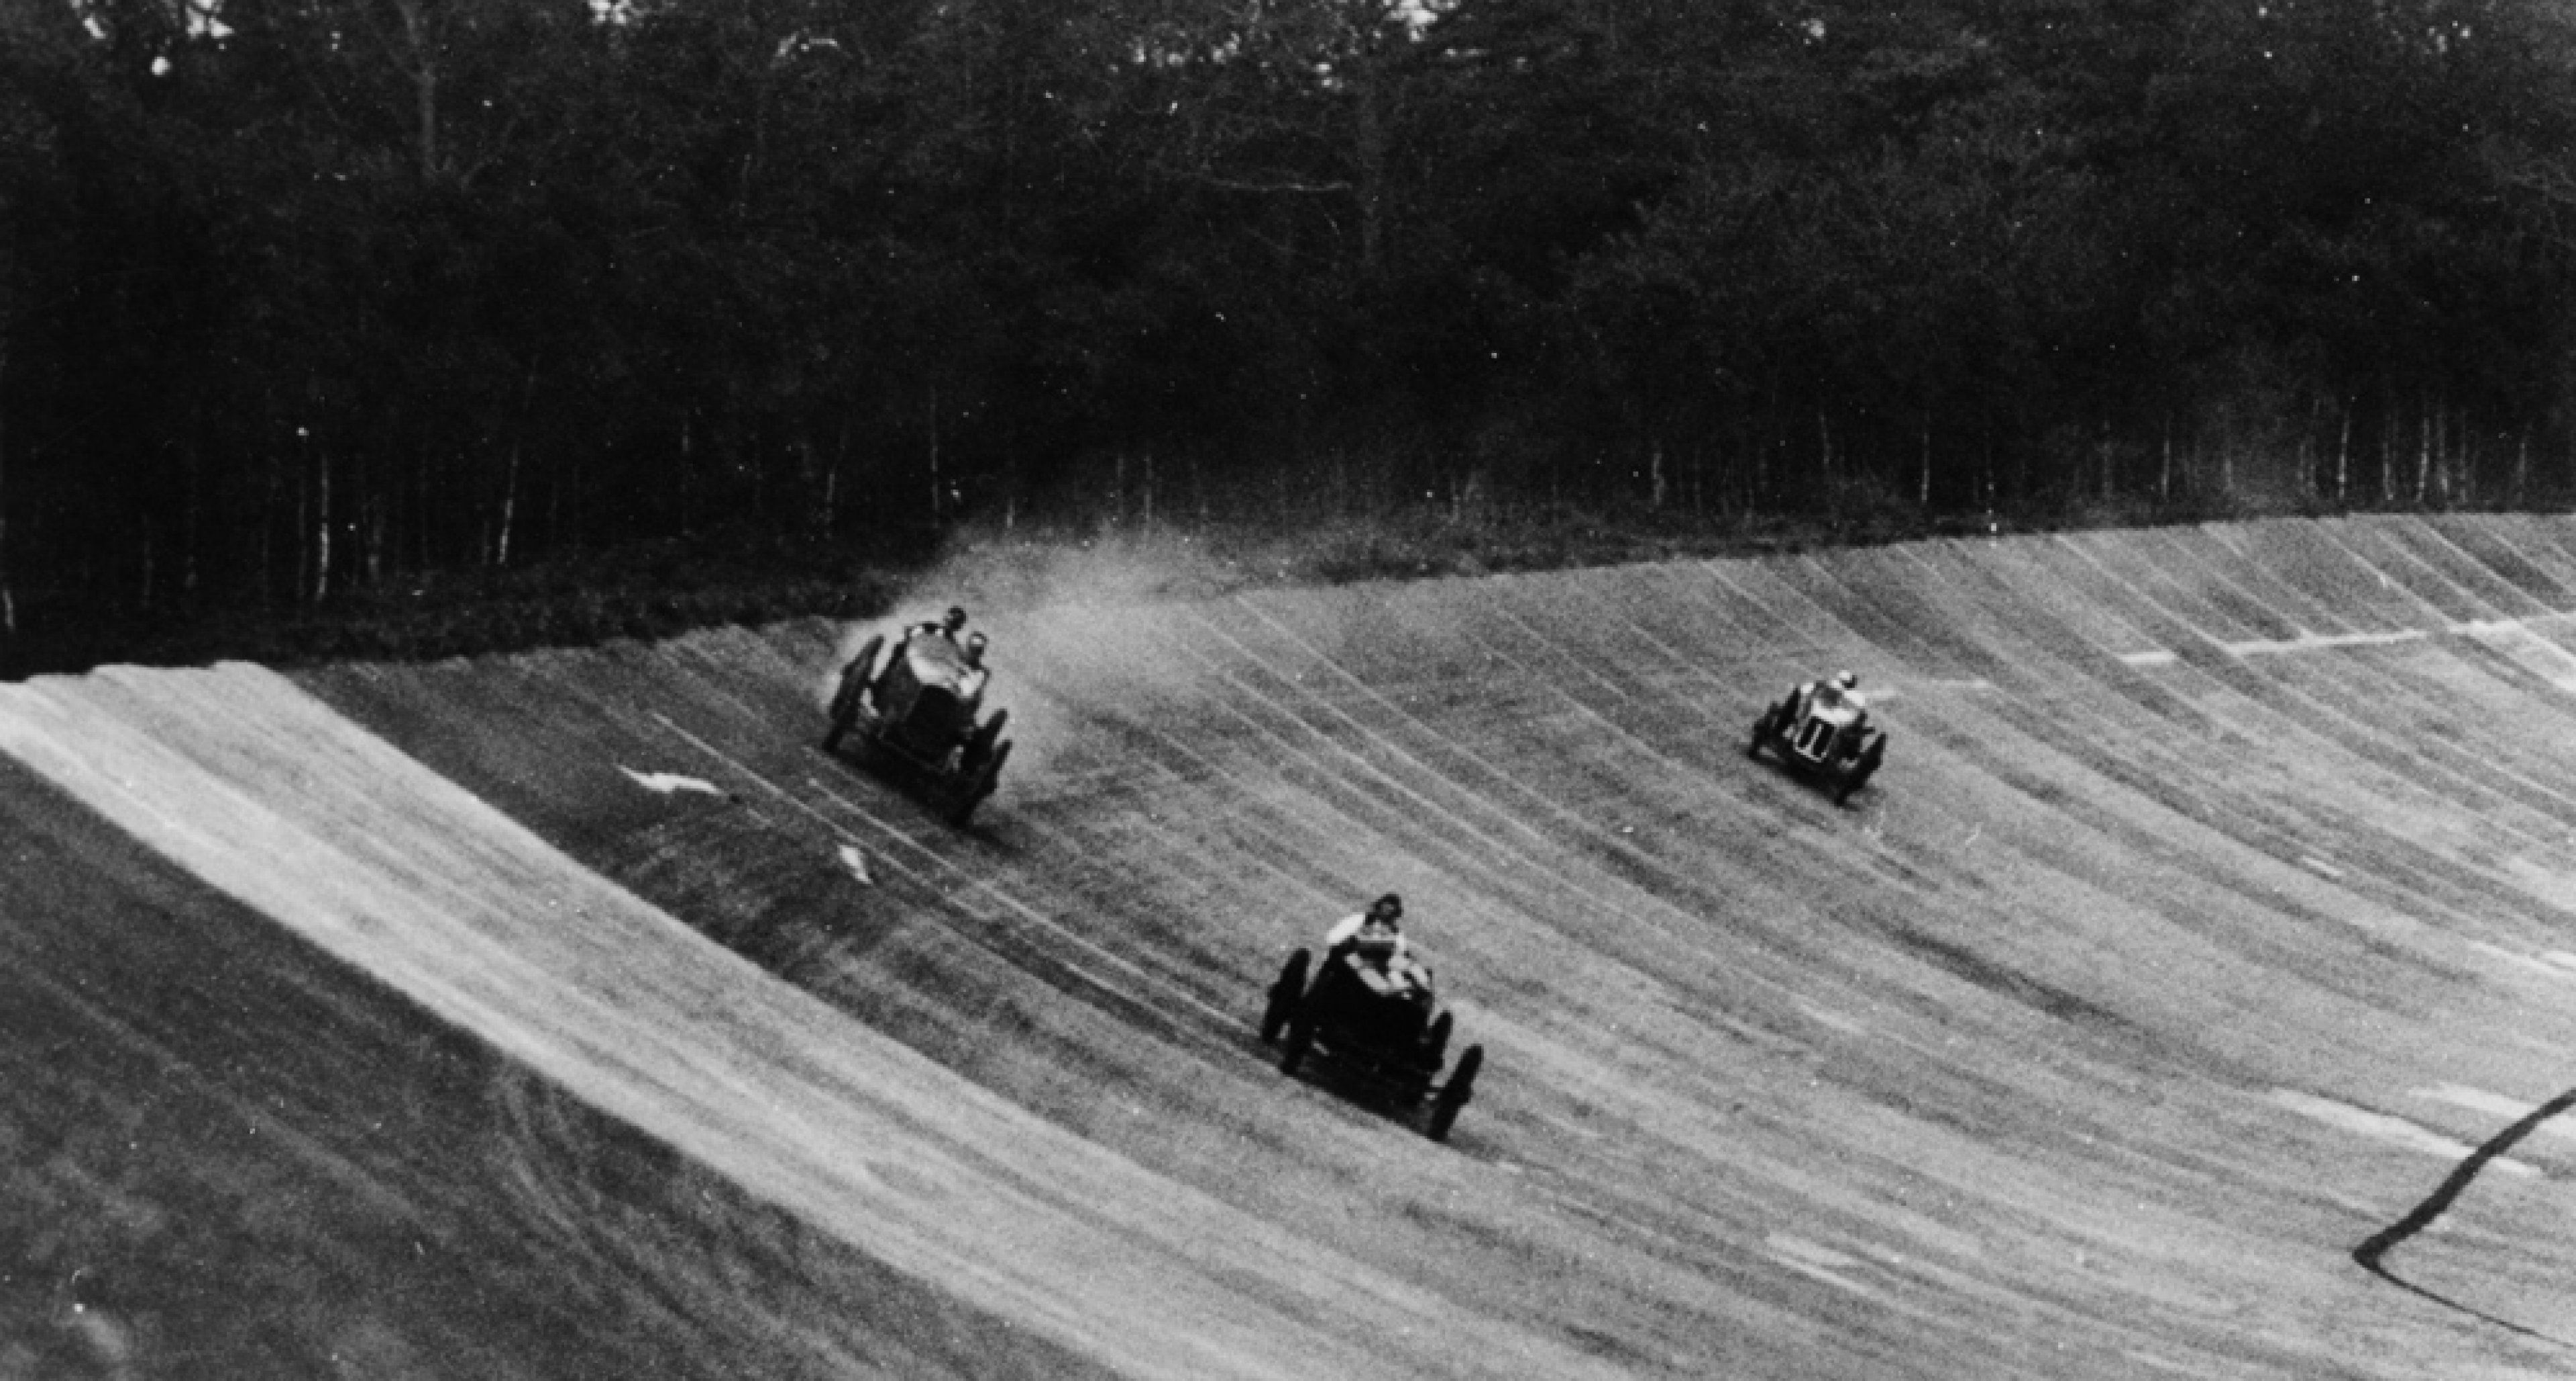 Louis Zborowski passing Humphrey Cook's Ballot by skidding above him, Brooklands. Henry Segrave eventually won the race in a Sunbeam.